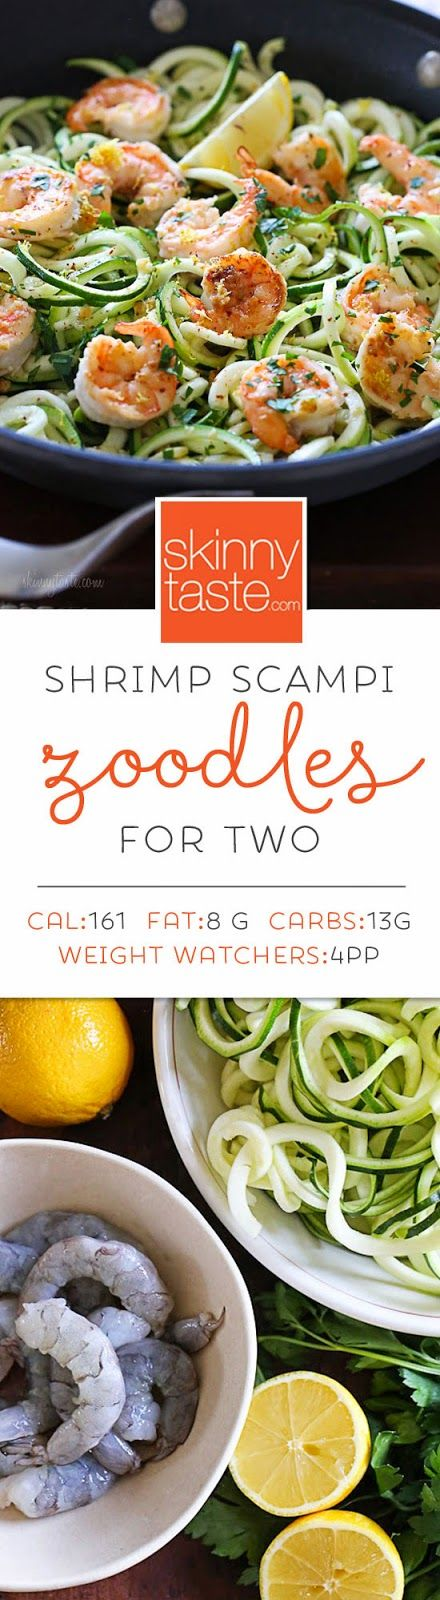 Shrimp Scampi Zoodles for Two – a quick and easy spiralized meal!